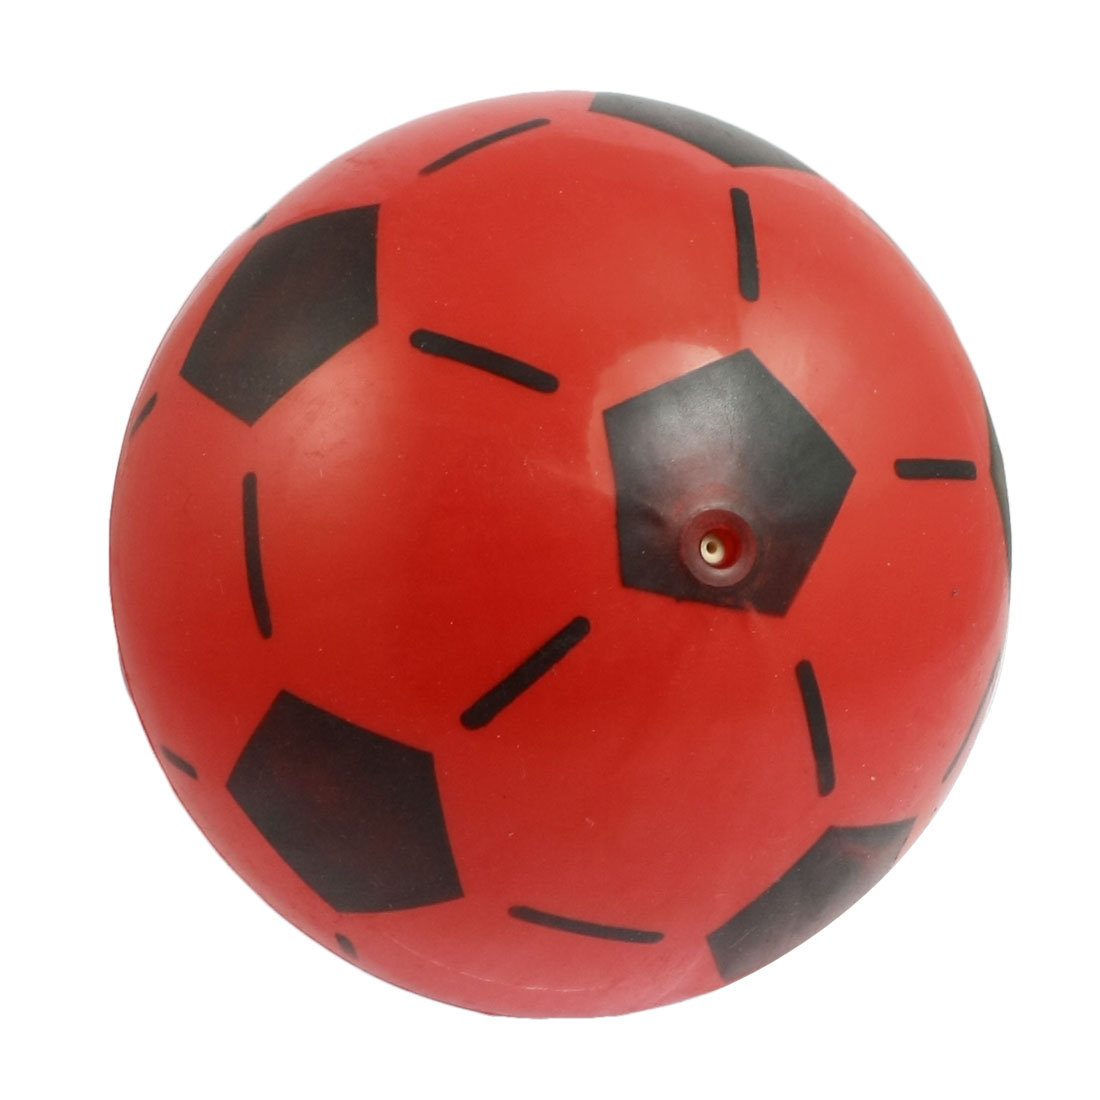 Red 19cm Diameter Football Shape Sports Training Exercise Body Massage Ball